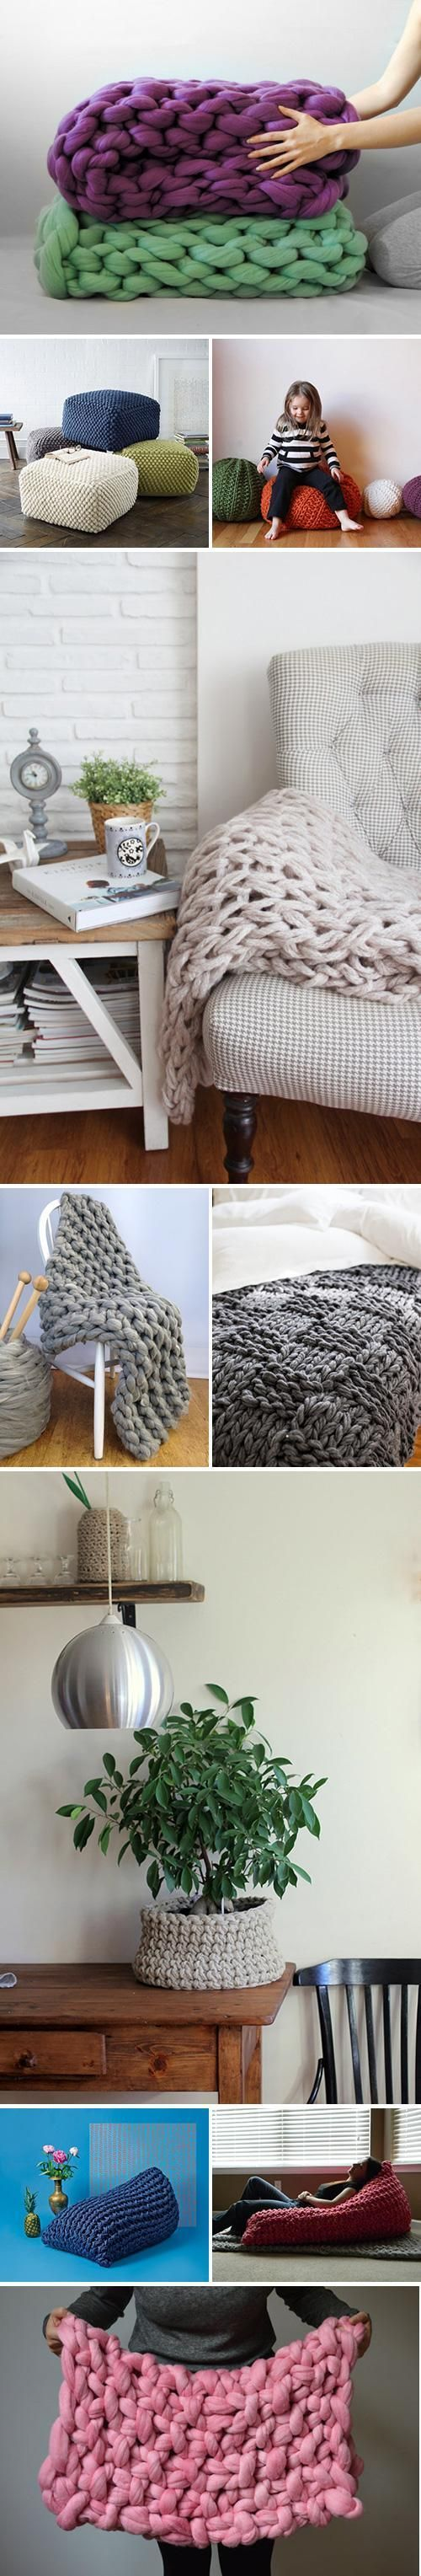 cool Hot Home Decor Trend: Chunky Knits to Buy or DIY